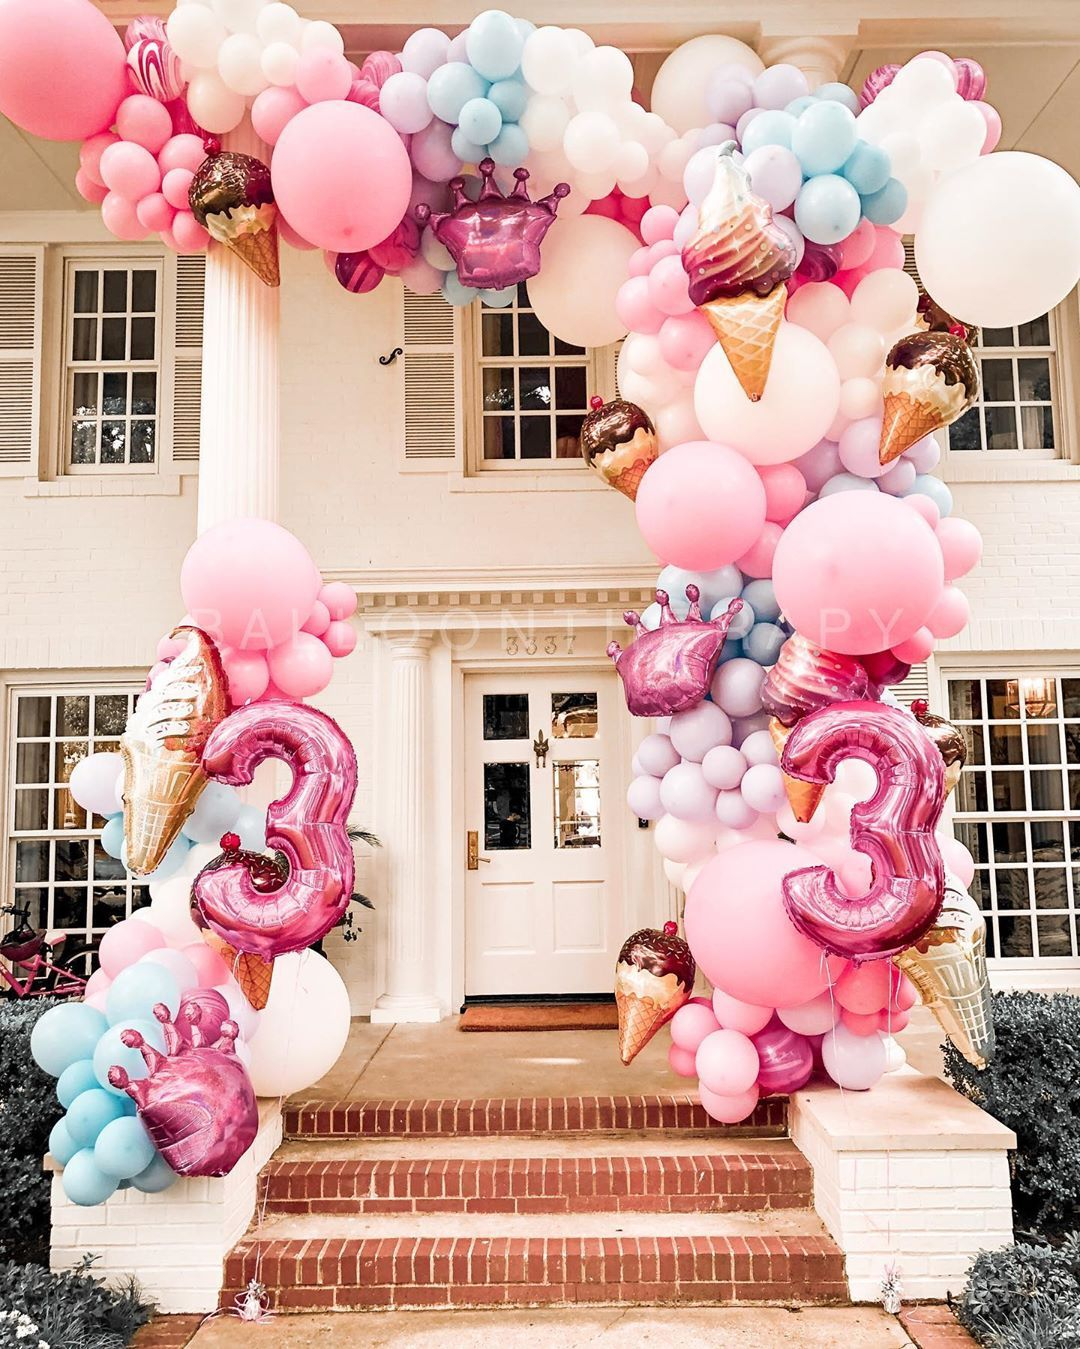 """Balloon Therapy on Instagram """"Day Dreams and Ice Creams"""